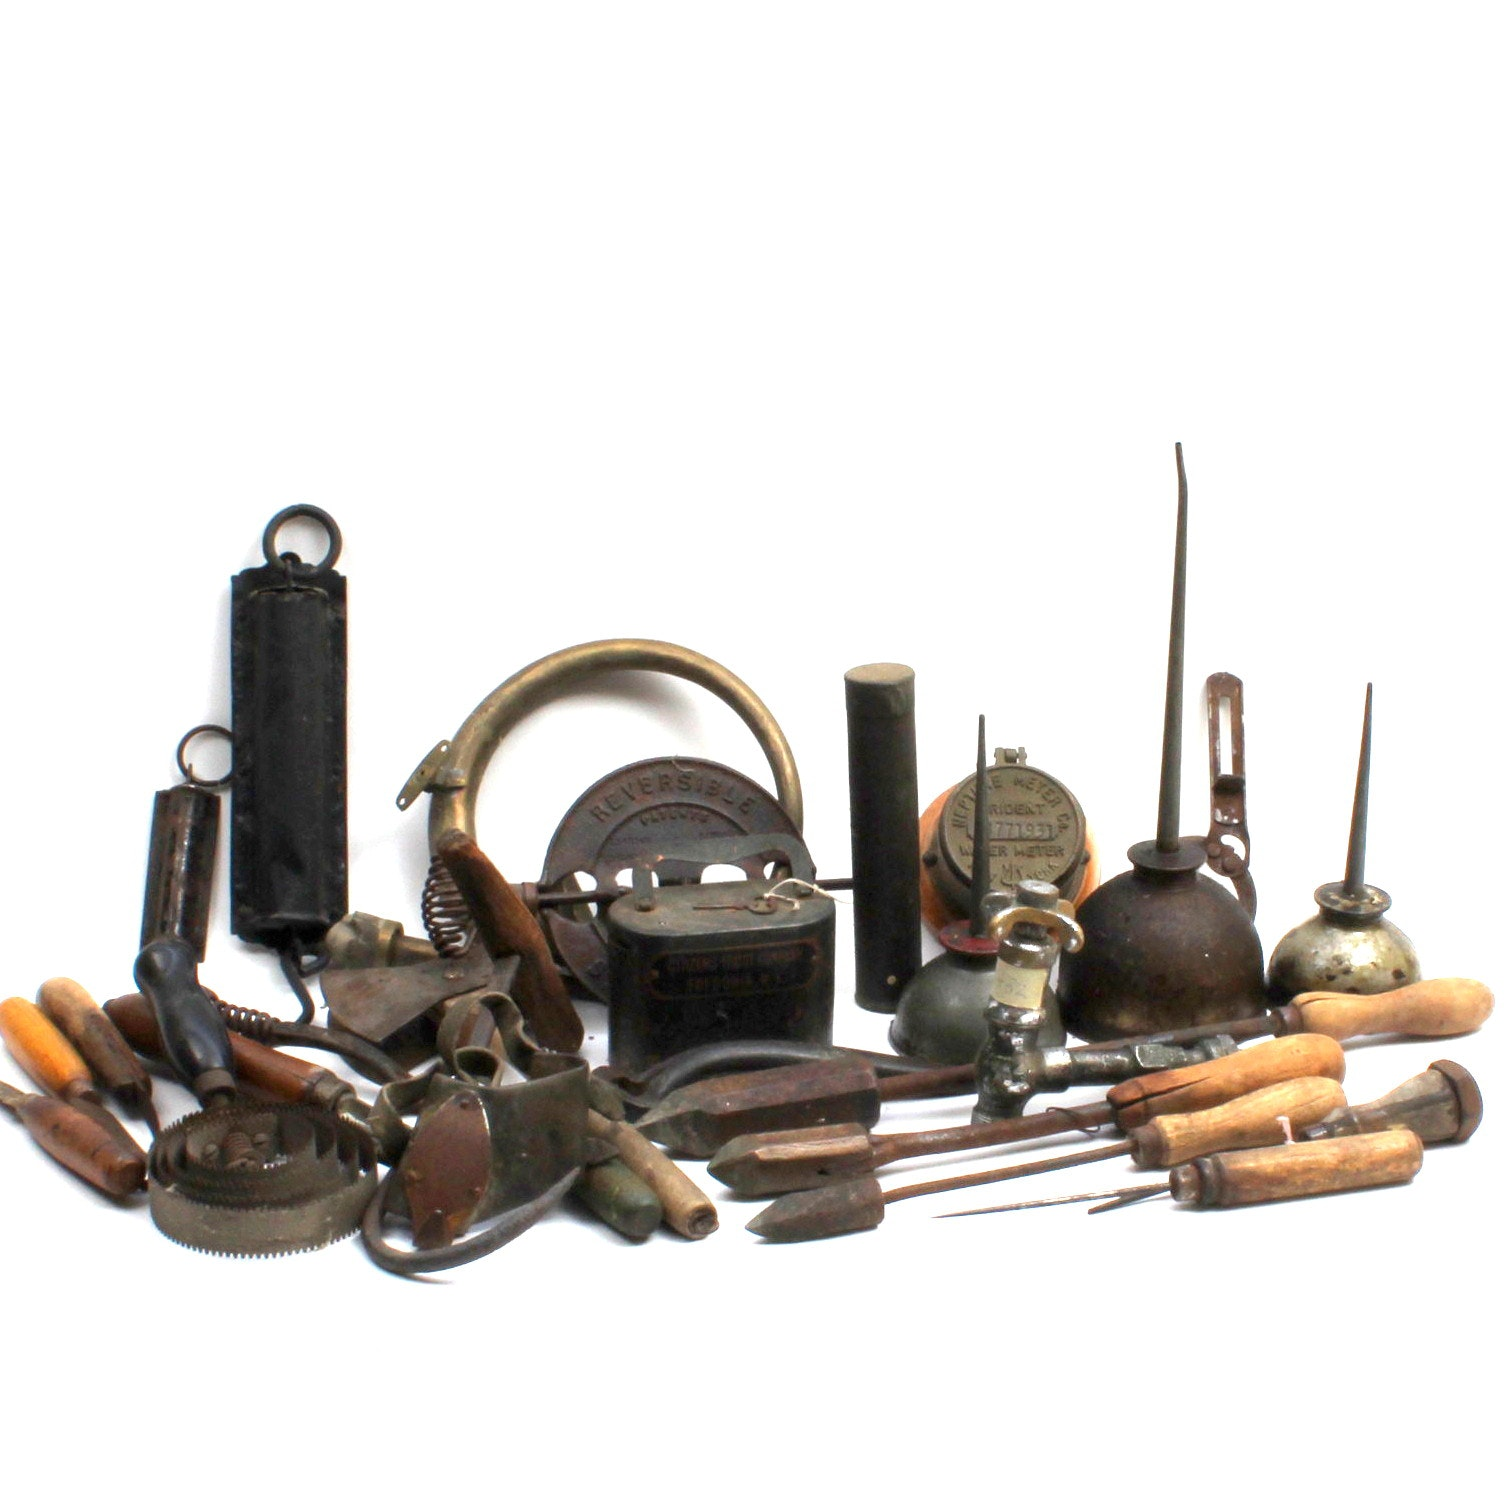 Vintage and Antique Tools and Miscellany